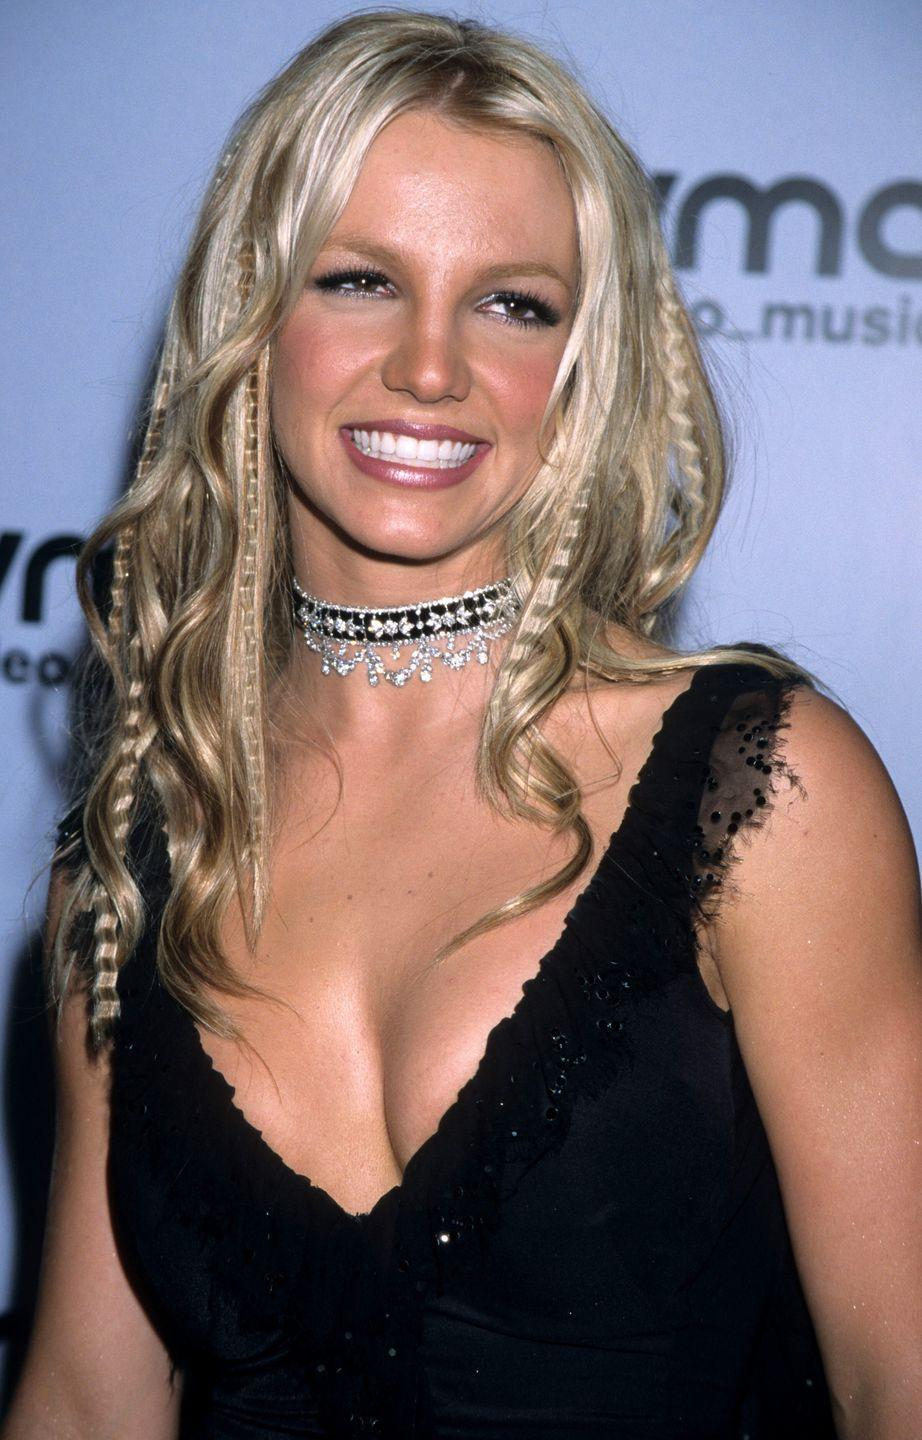 <p>Warning: Crimping your hair at home <del>never</del> rarely turns out looking like Britney at the MTV Music Video Awards. Doesn't mean you shouldn't try, tho! I believe in you!</p>